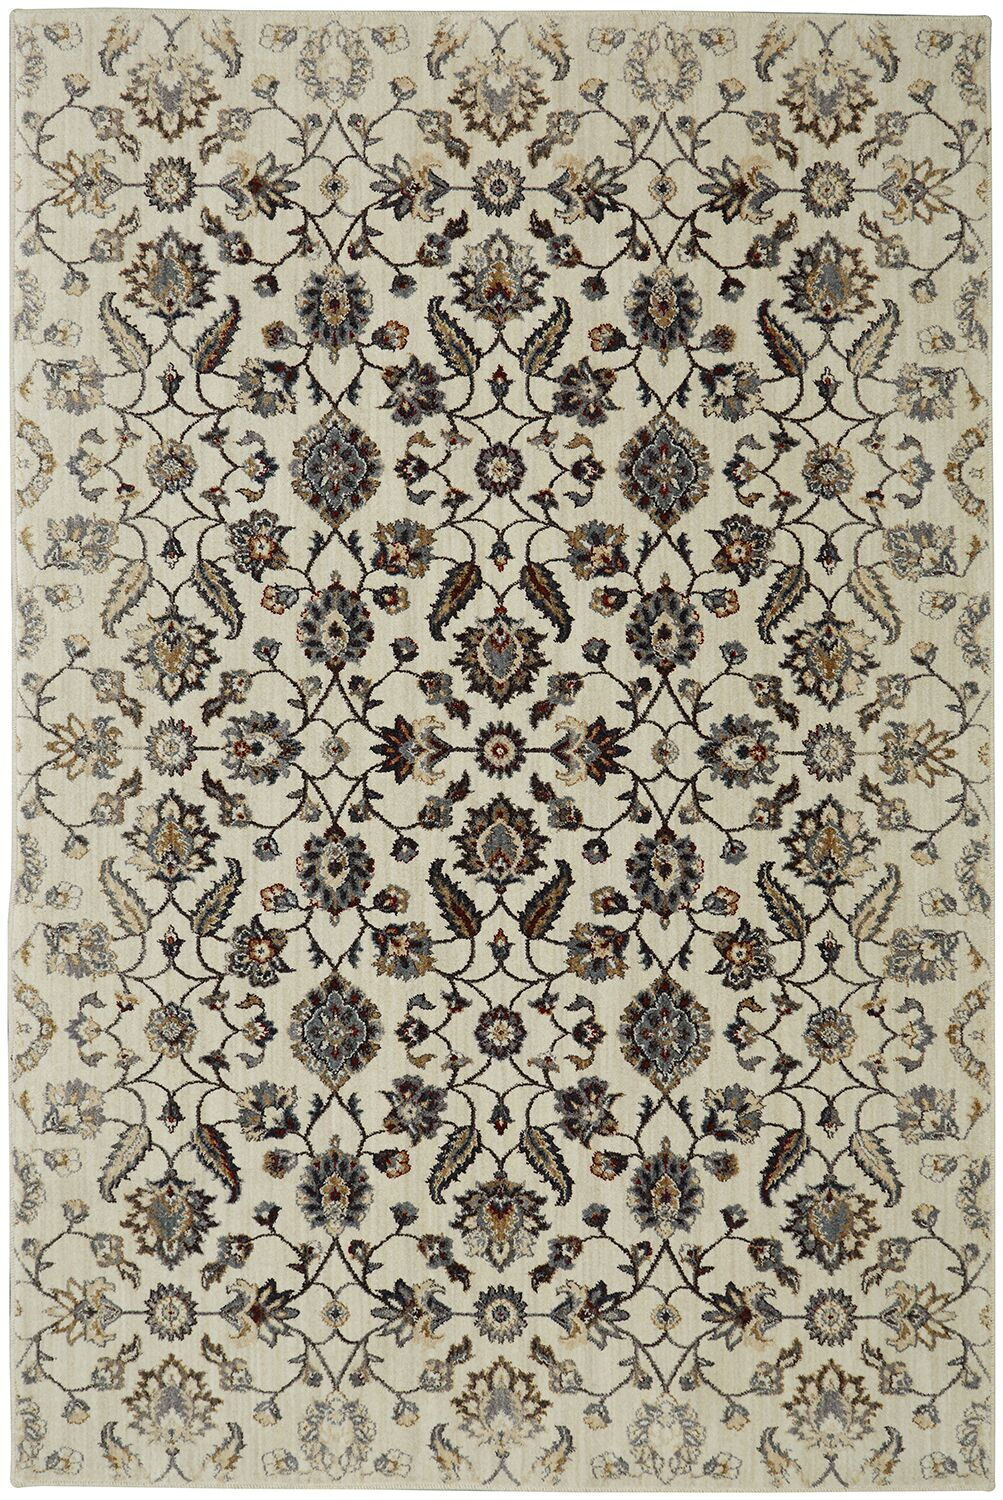 Lakemont Beige/Brown Area Rug Rug Size: Rectangle 5'3